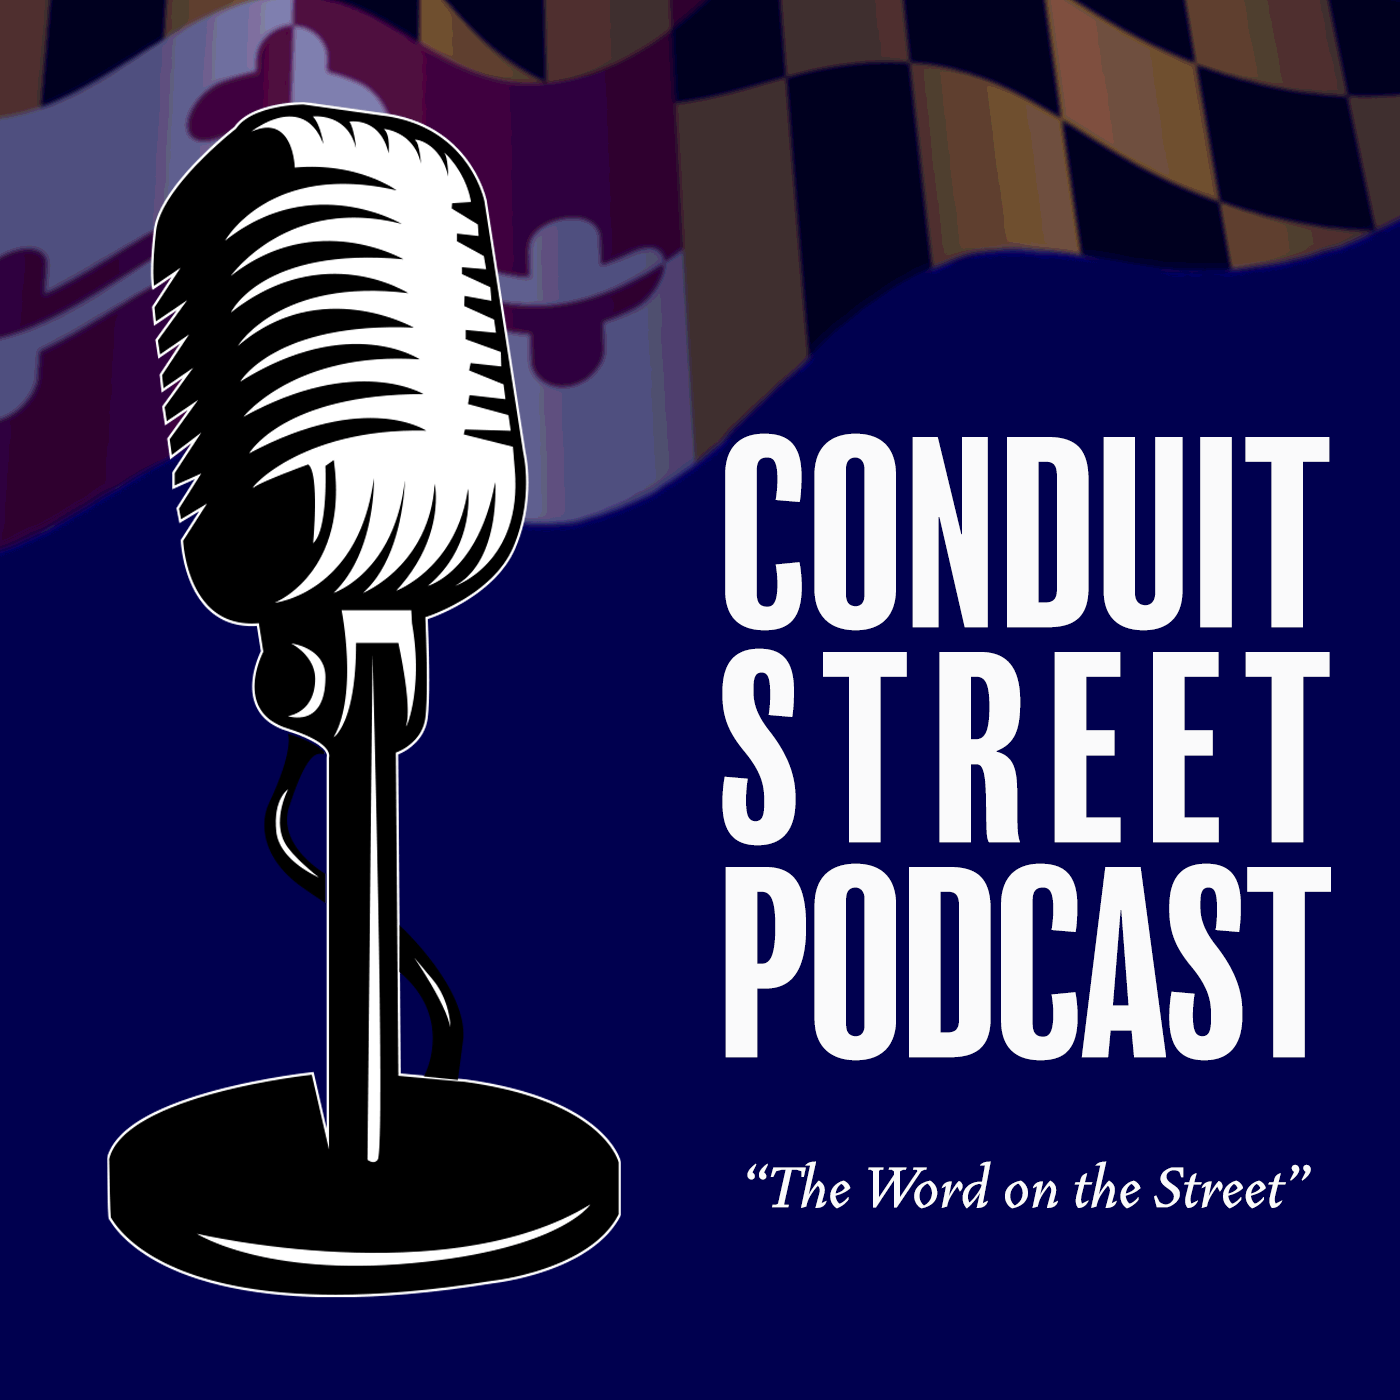 Conduit Street Podcast: Legislators' Roadmap to Reconvene